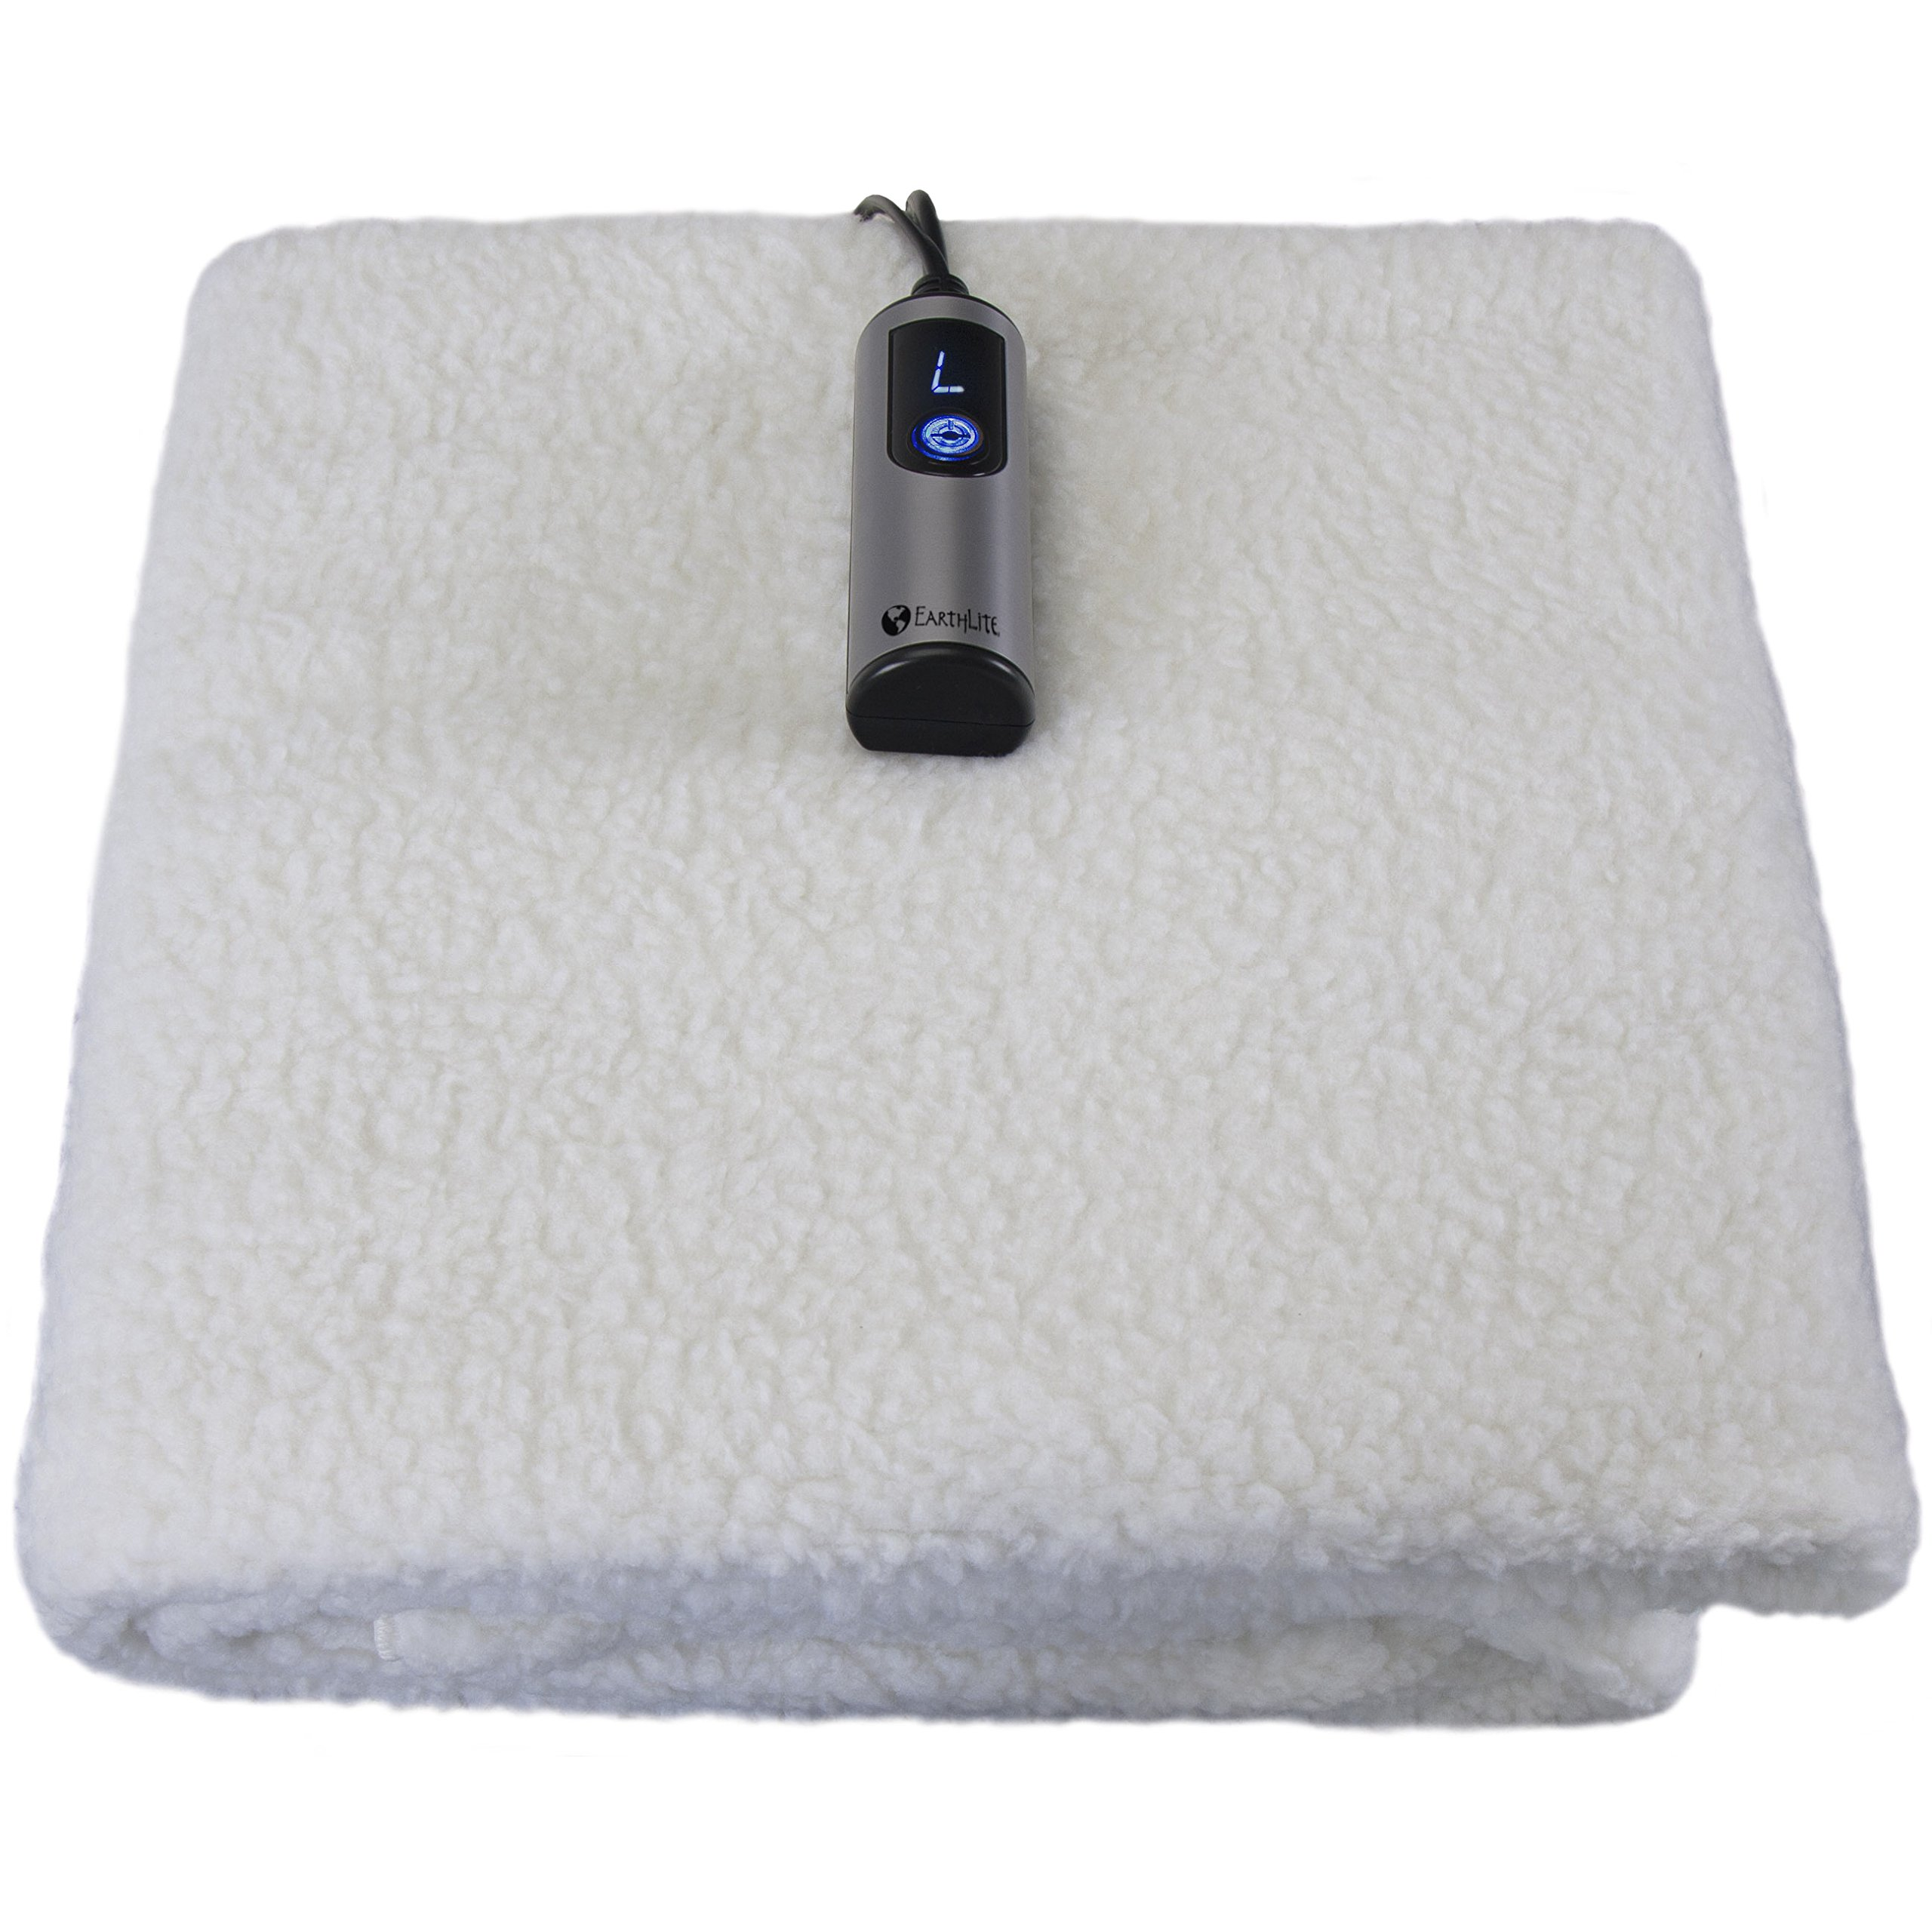 EARTHLITE Fleece Massage Table Warmer & Fleece Pad, 3 Heat Settings, 13ft Power Cord (Improved 2018 Model)